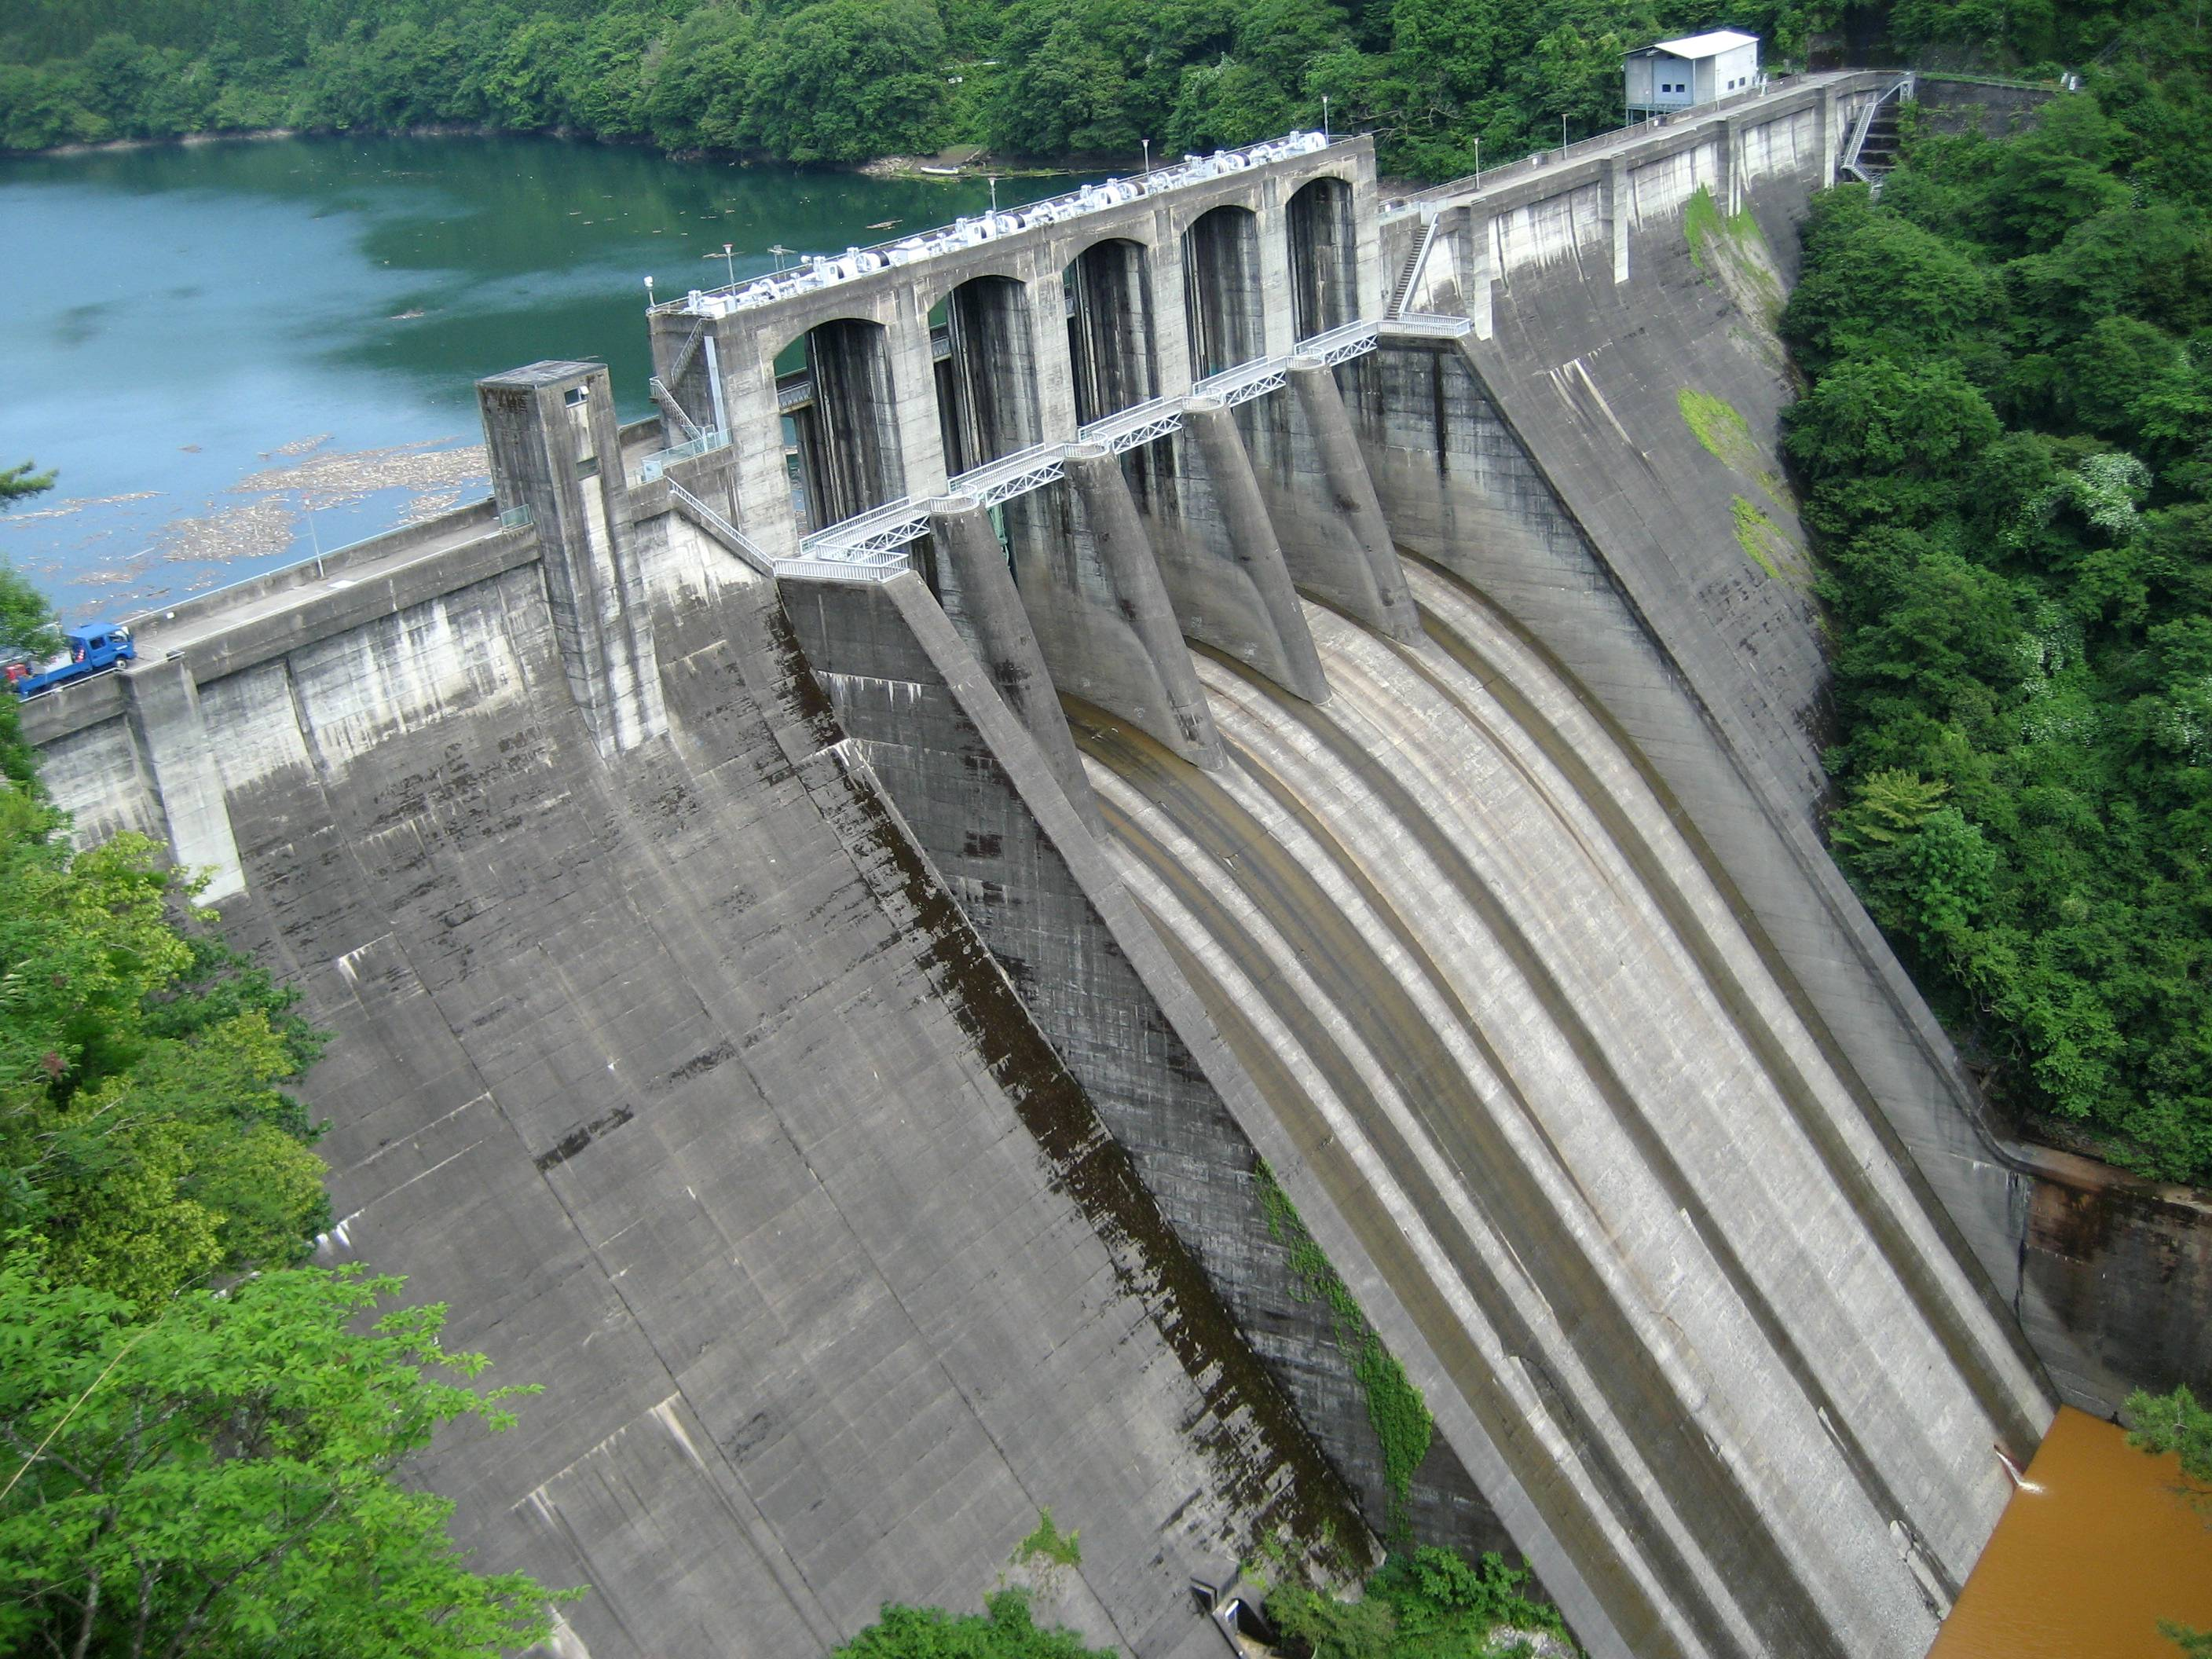 Eia The World S Nine Largest Operating Power Plants Are Hydroelectric Facilities